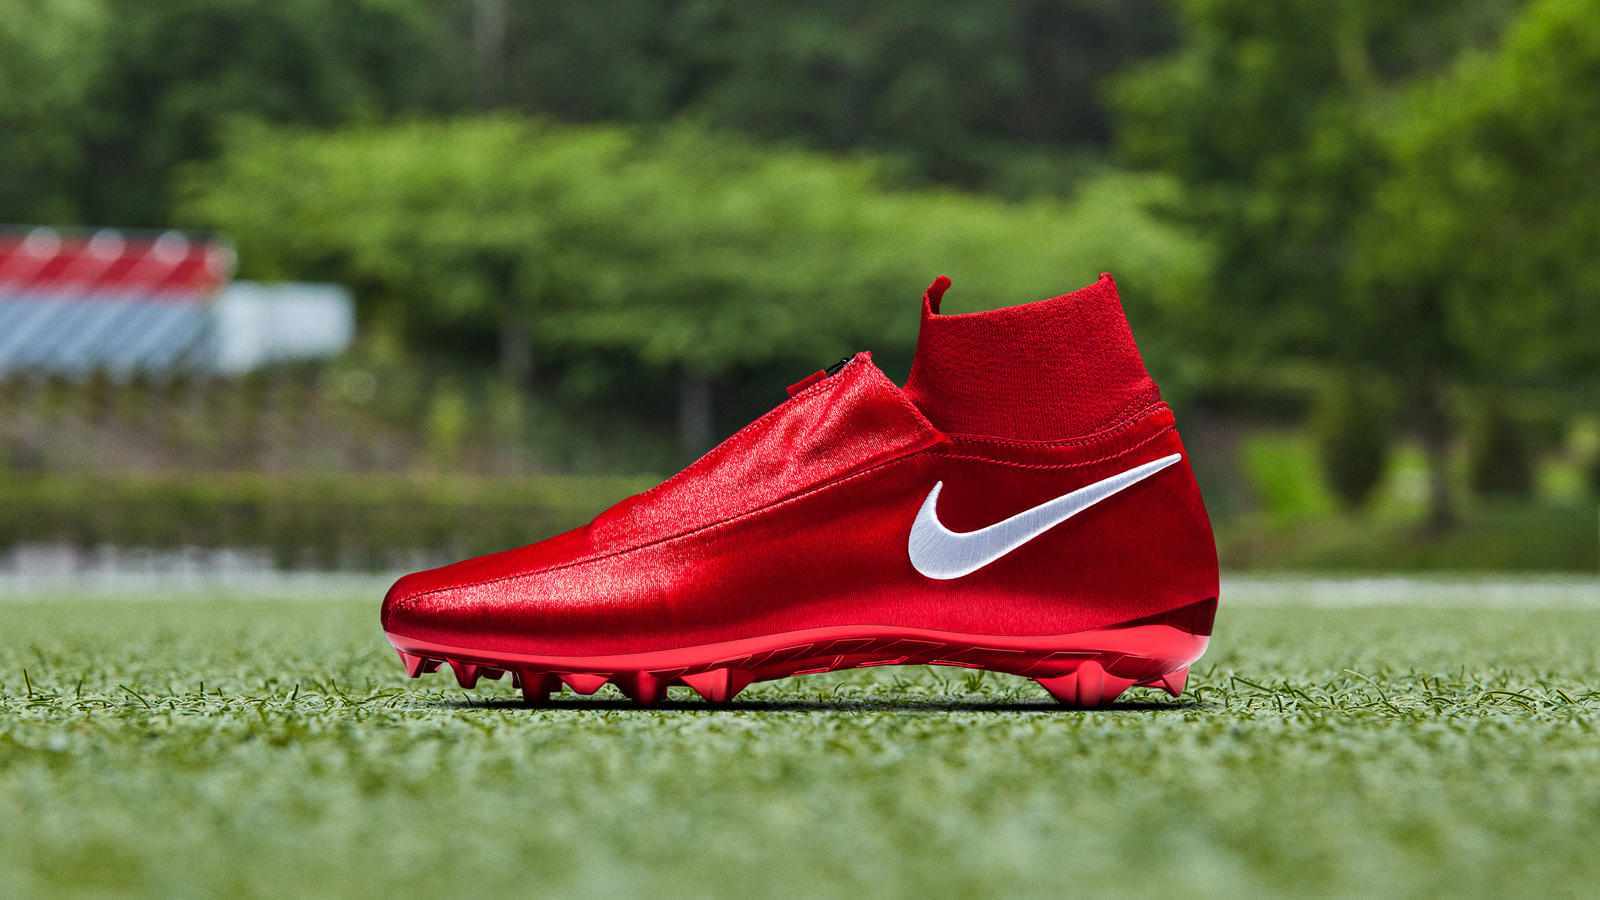 Nike Gold Cleat (Odell Beckham Jr. Special Edition) 0